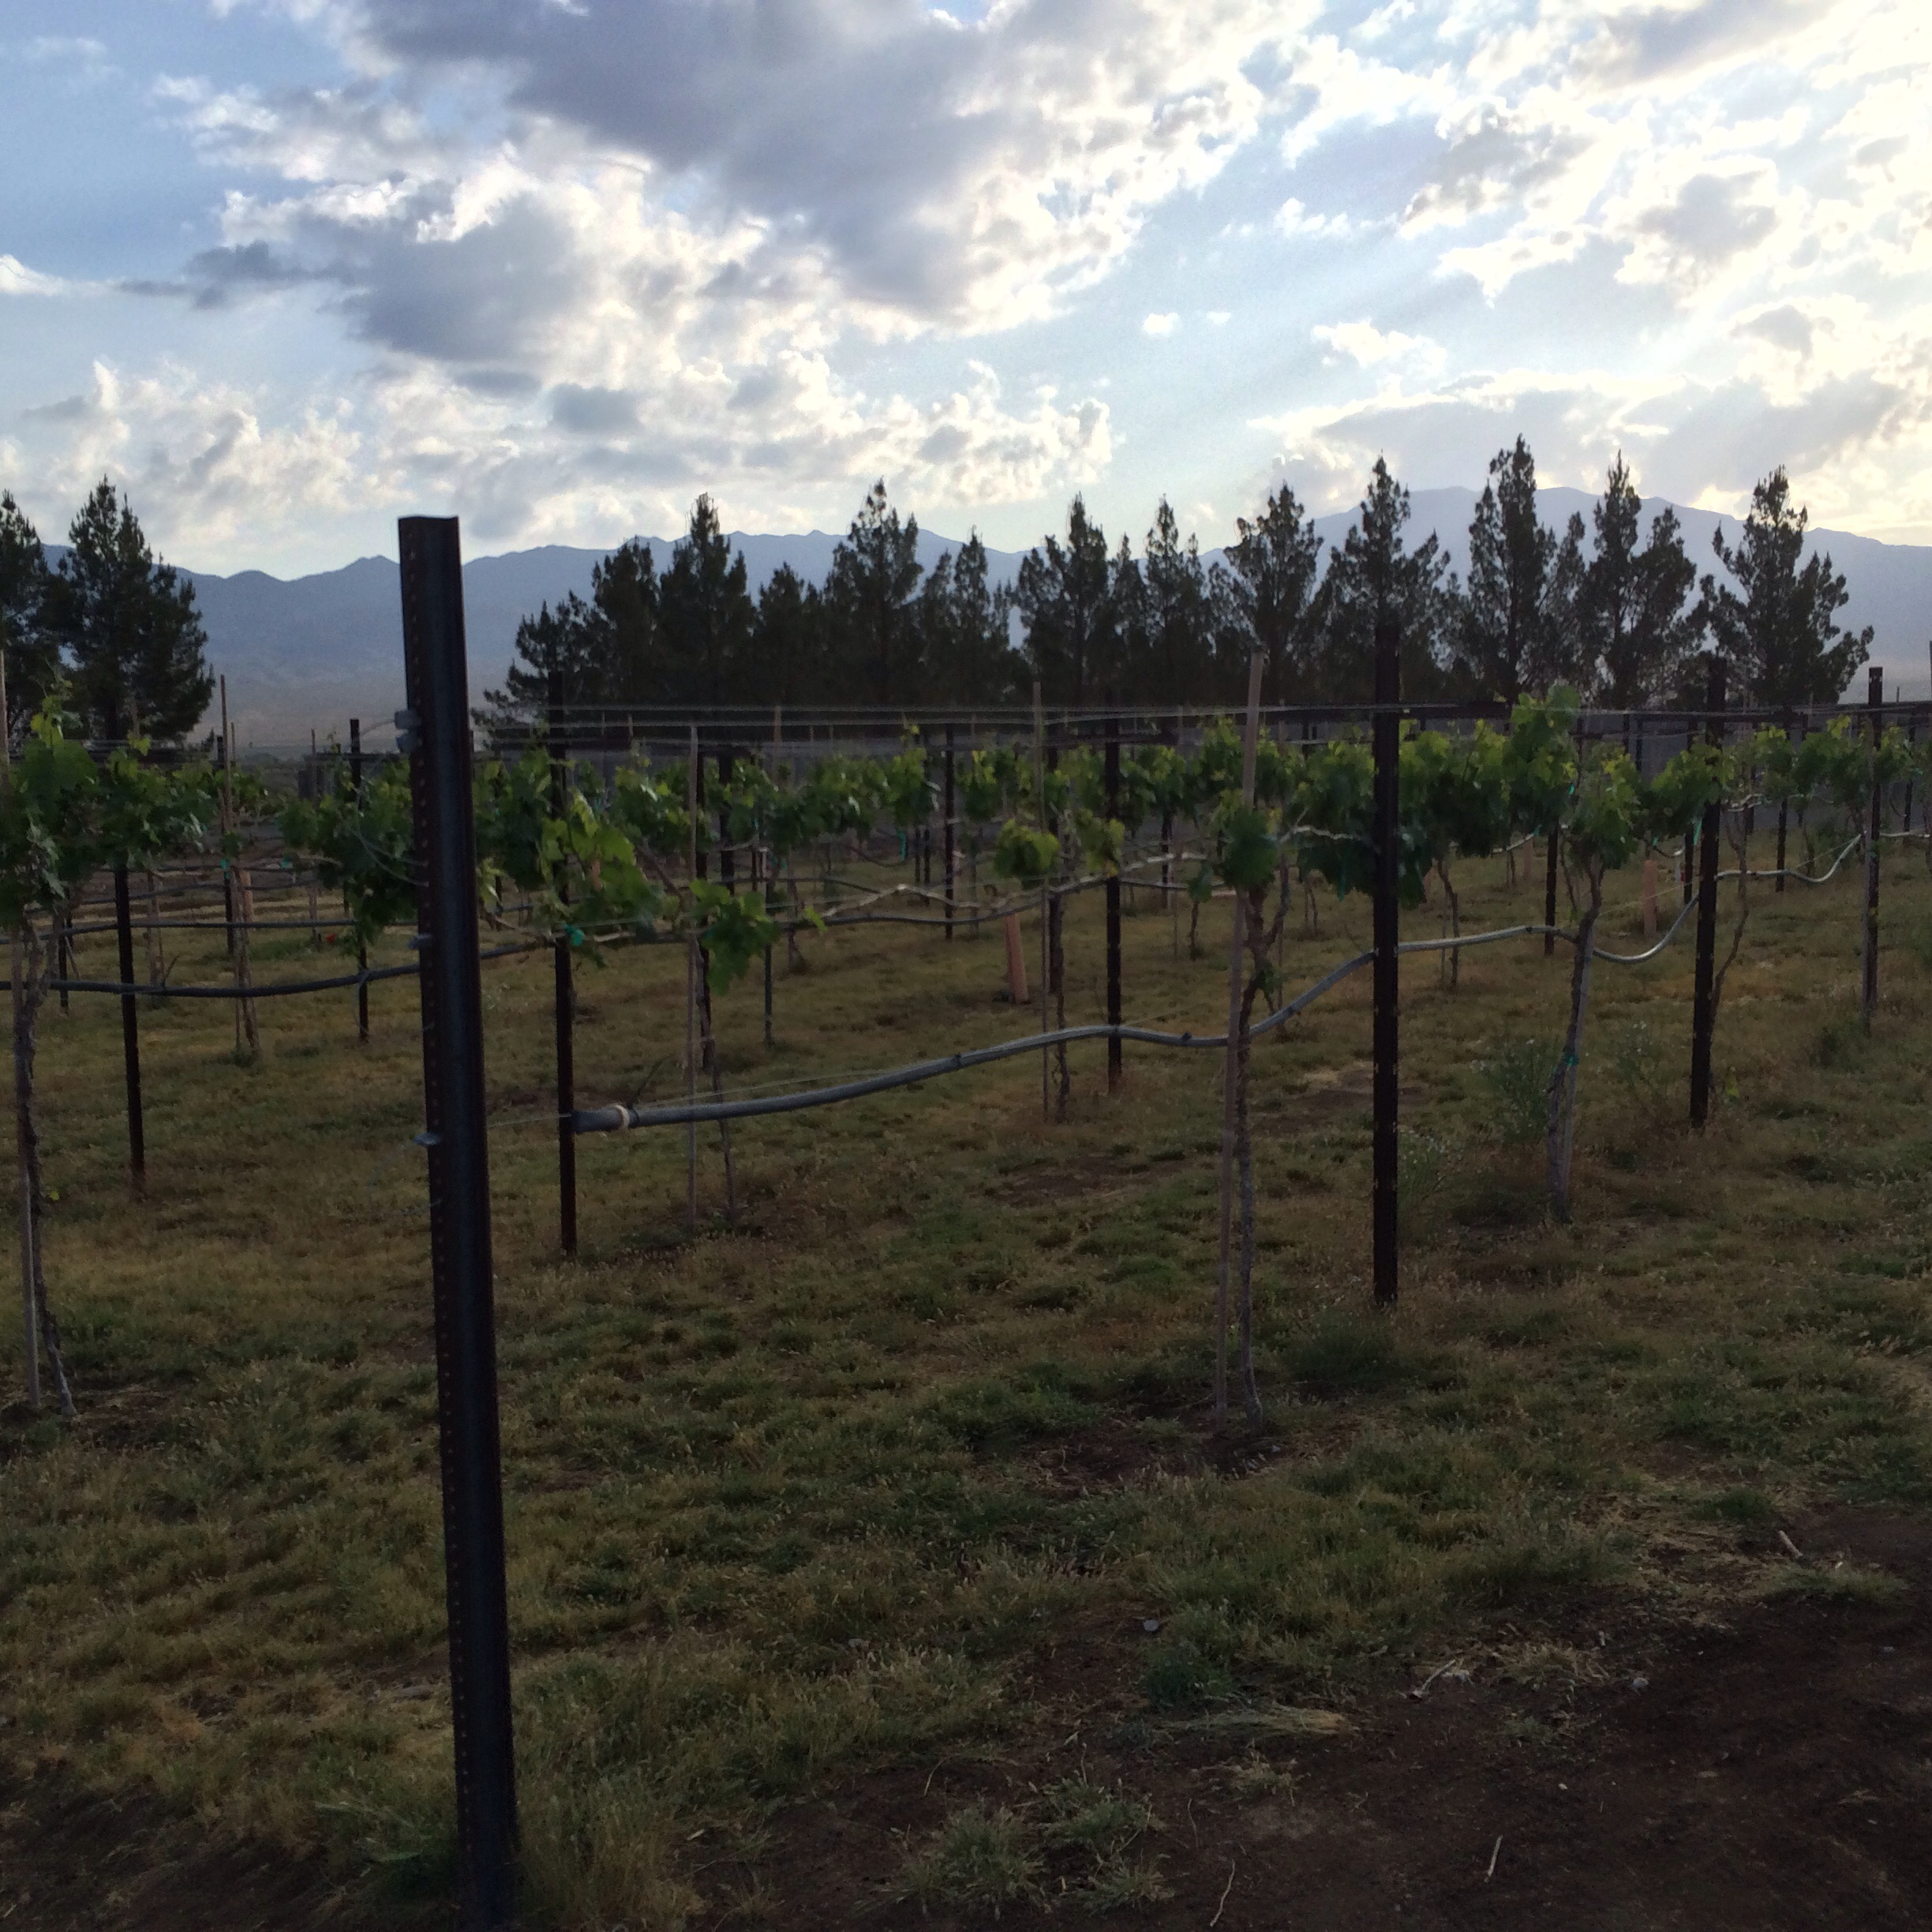 This mornings view in the farm vineyard